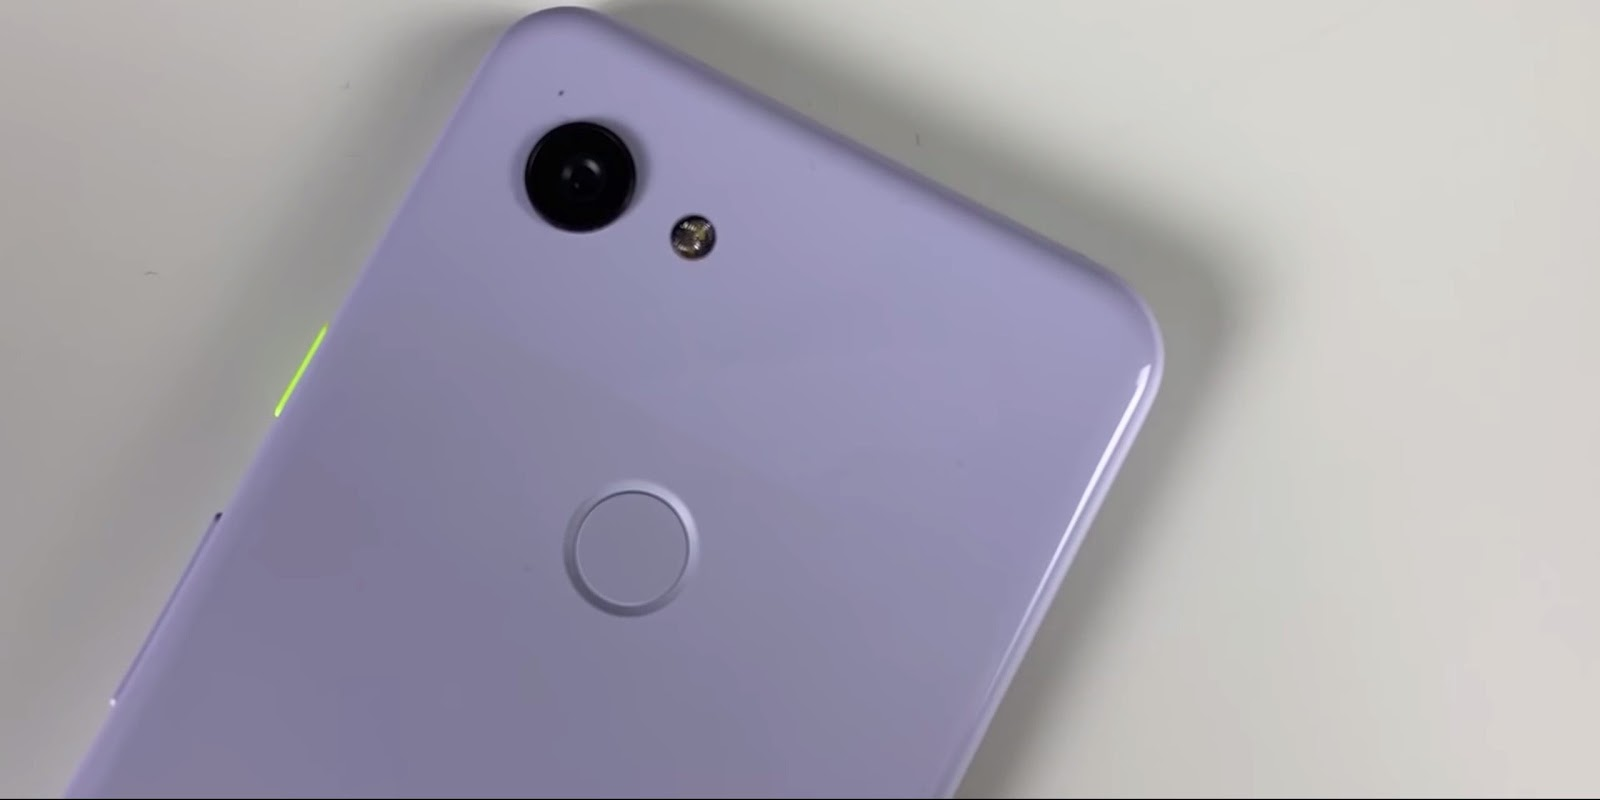 [Leaked] Pixel 3 Lite Pre-Production Device Shown Off In Video